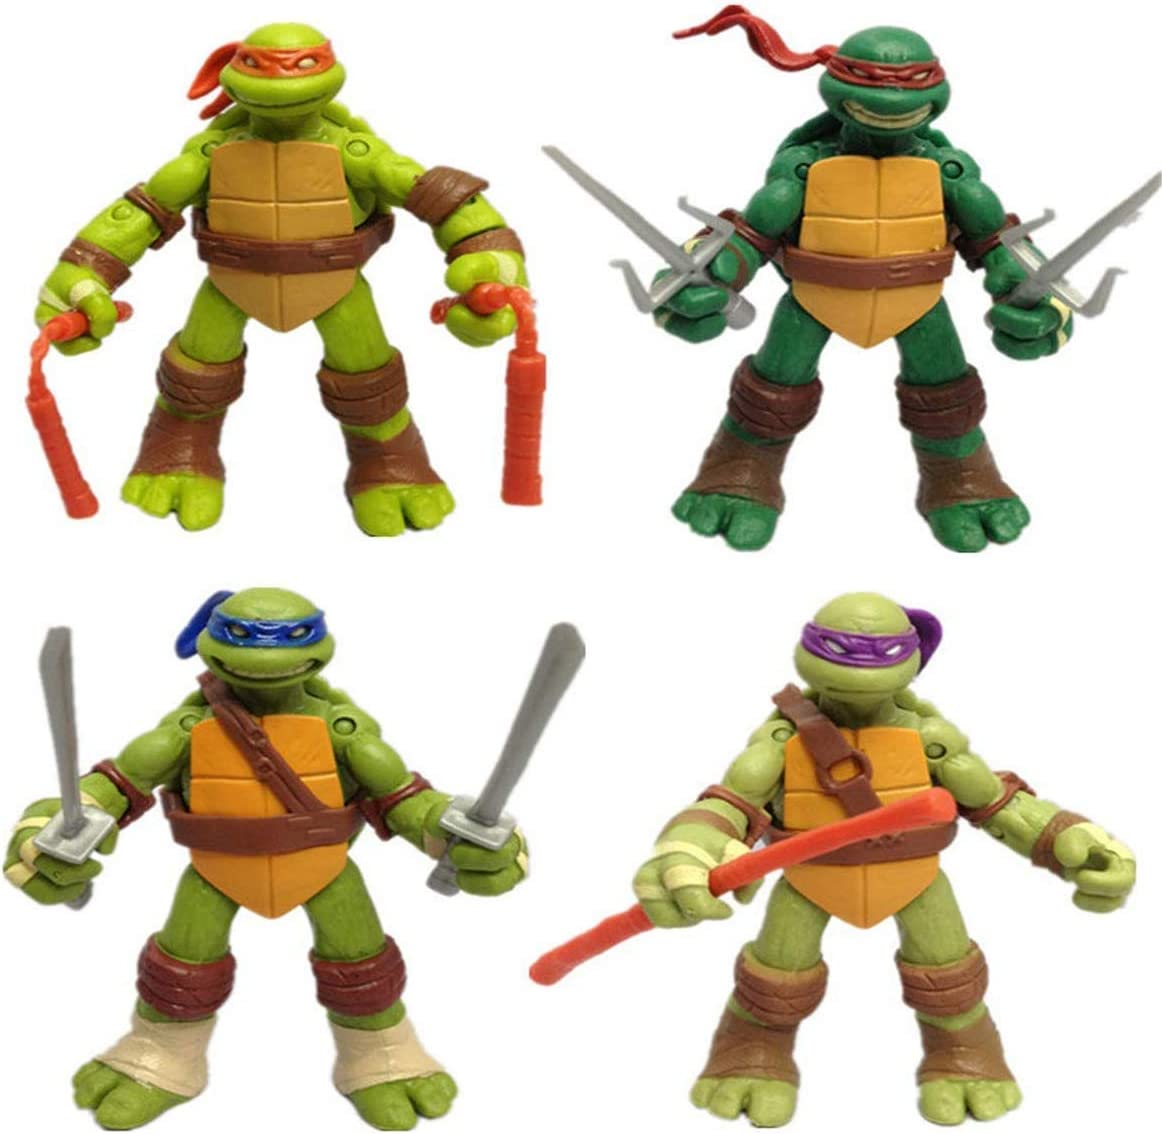 New 5/'/' TMNT One Pcs Teenage Mutant Ninja Turtles Michelangelo Action PVC Figure